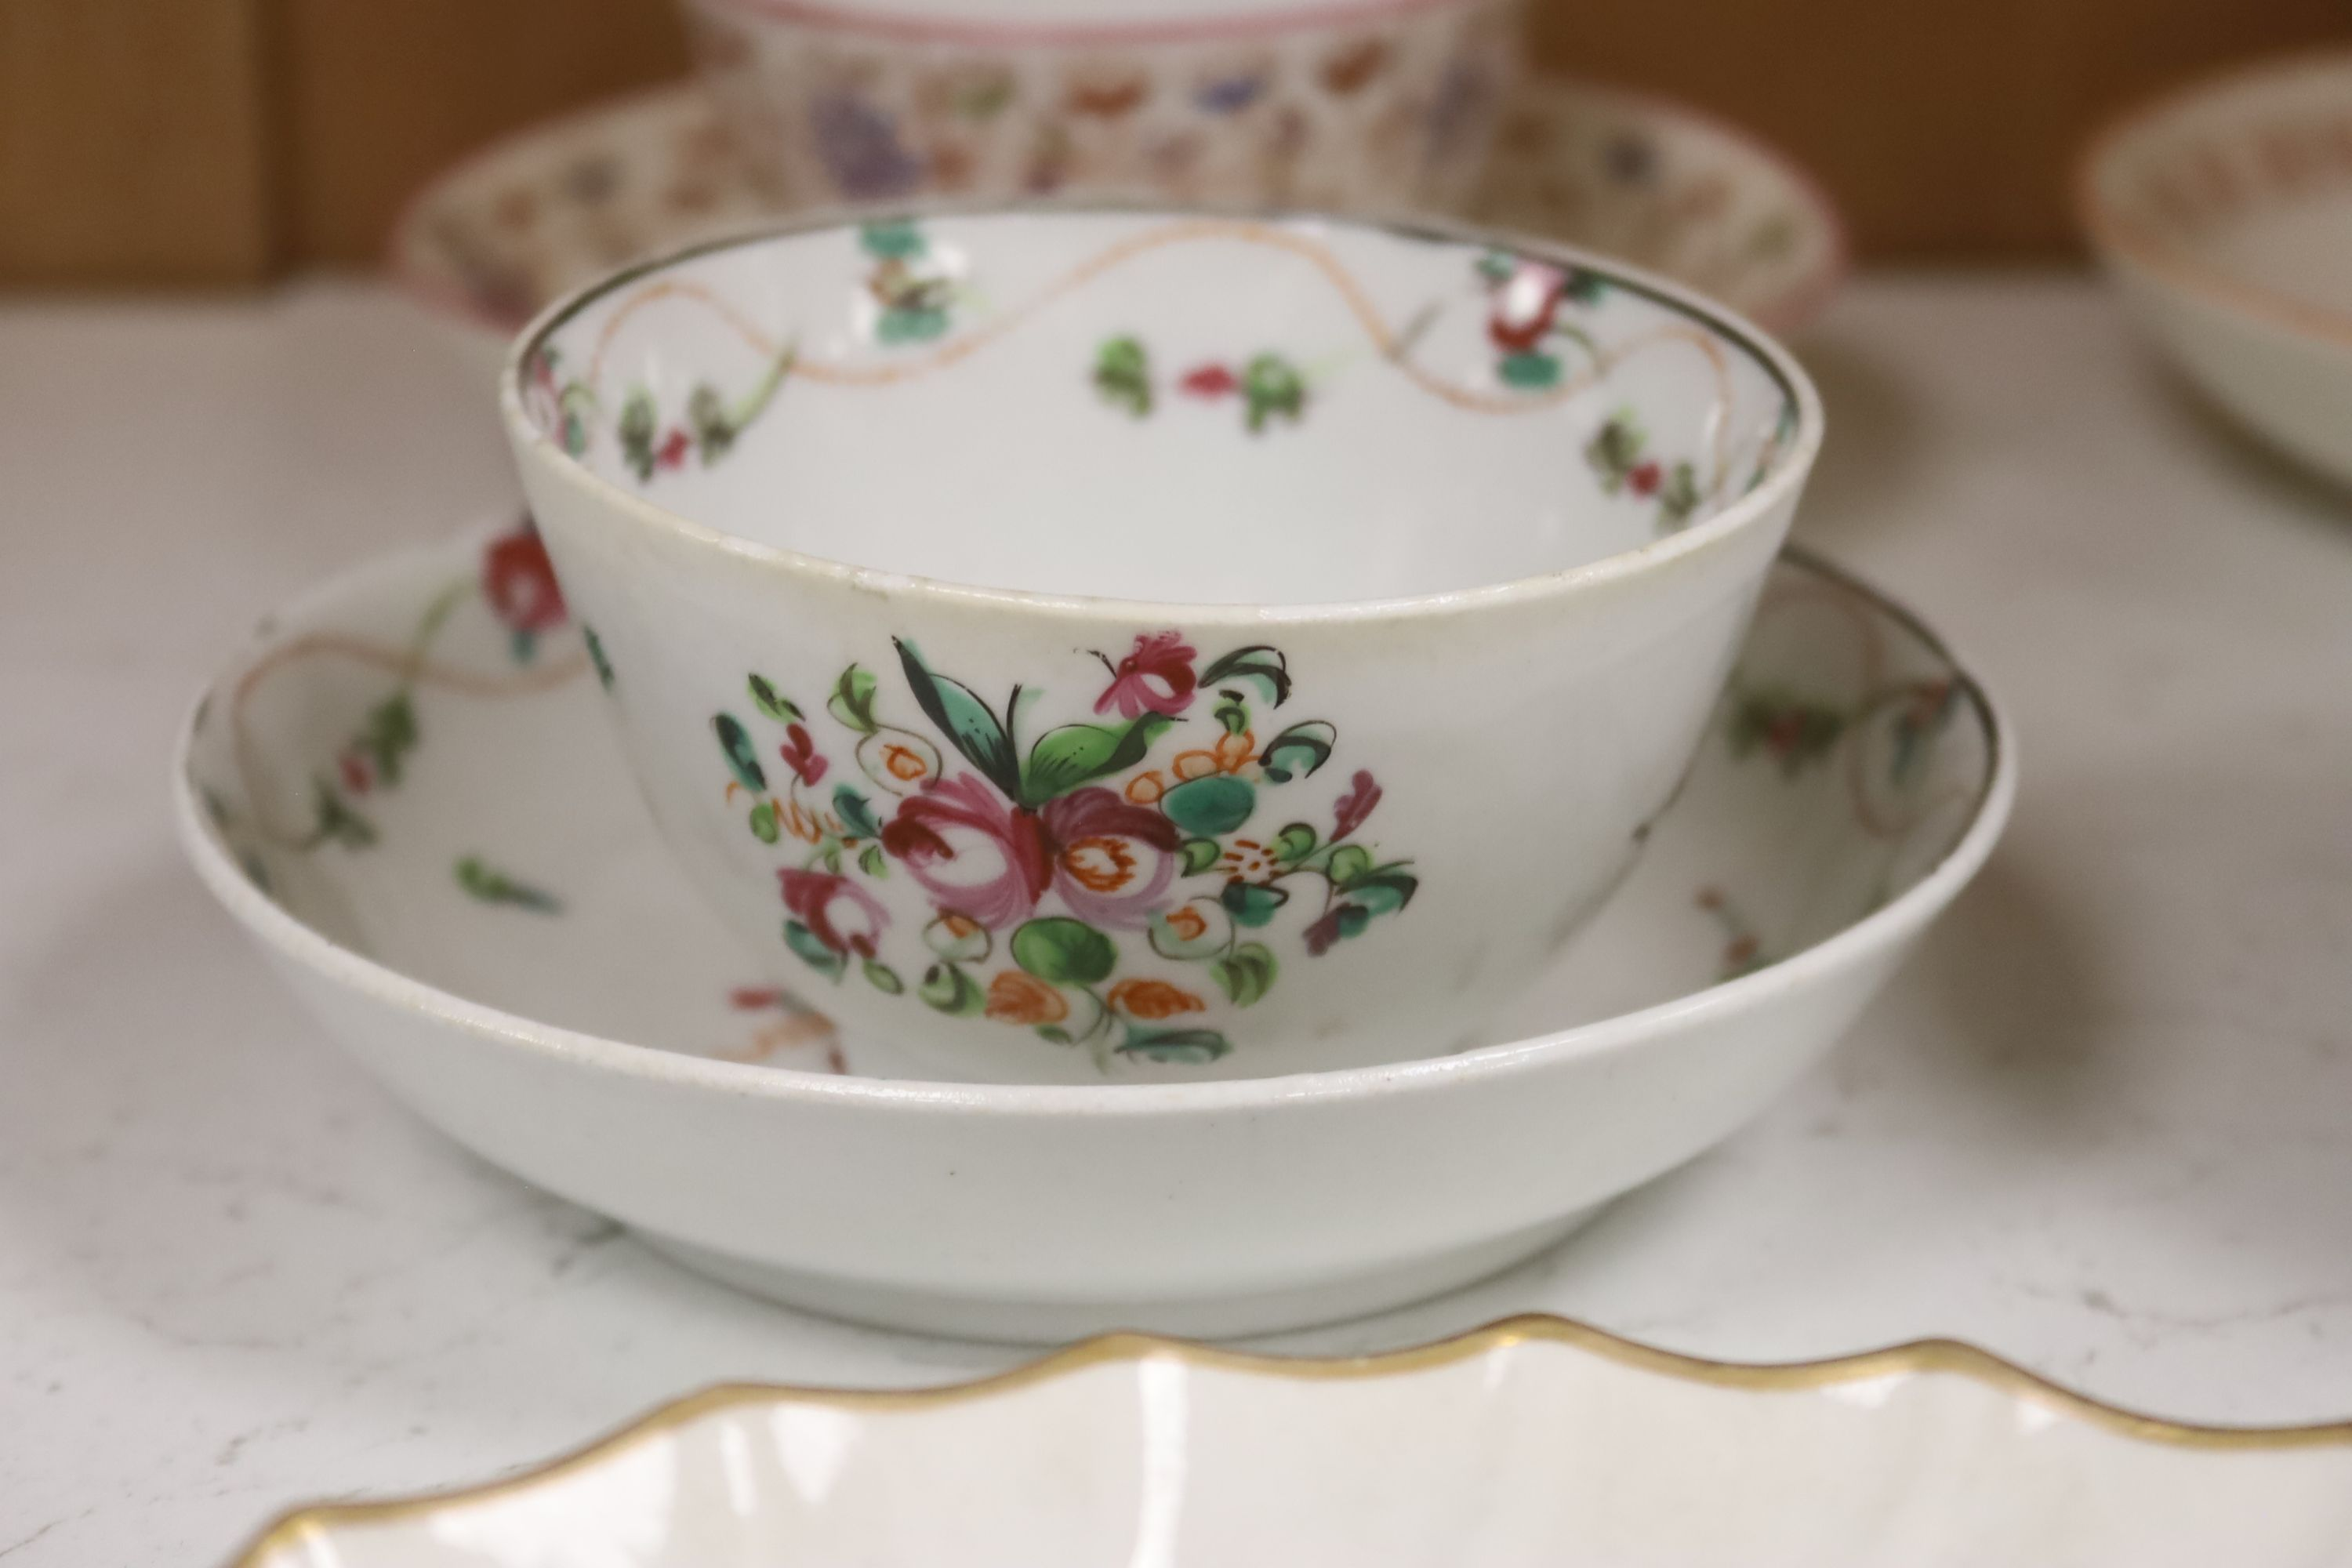 A group of late 18th / early 19th century English porcelain teaware and plates,together with a - Image 6 of 6